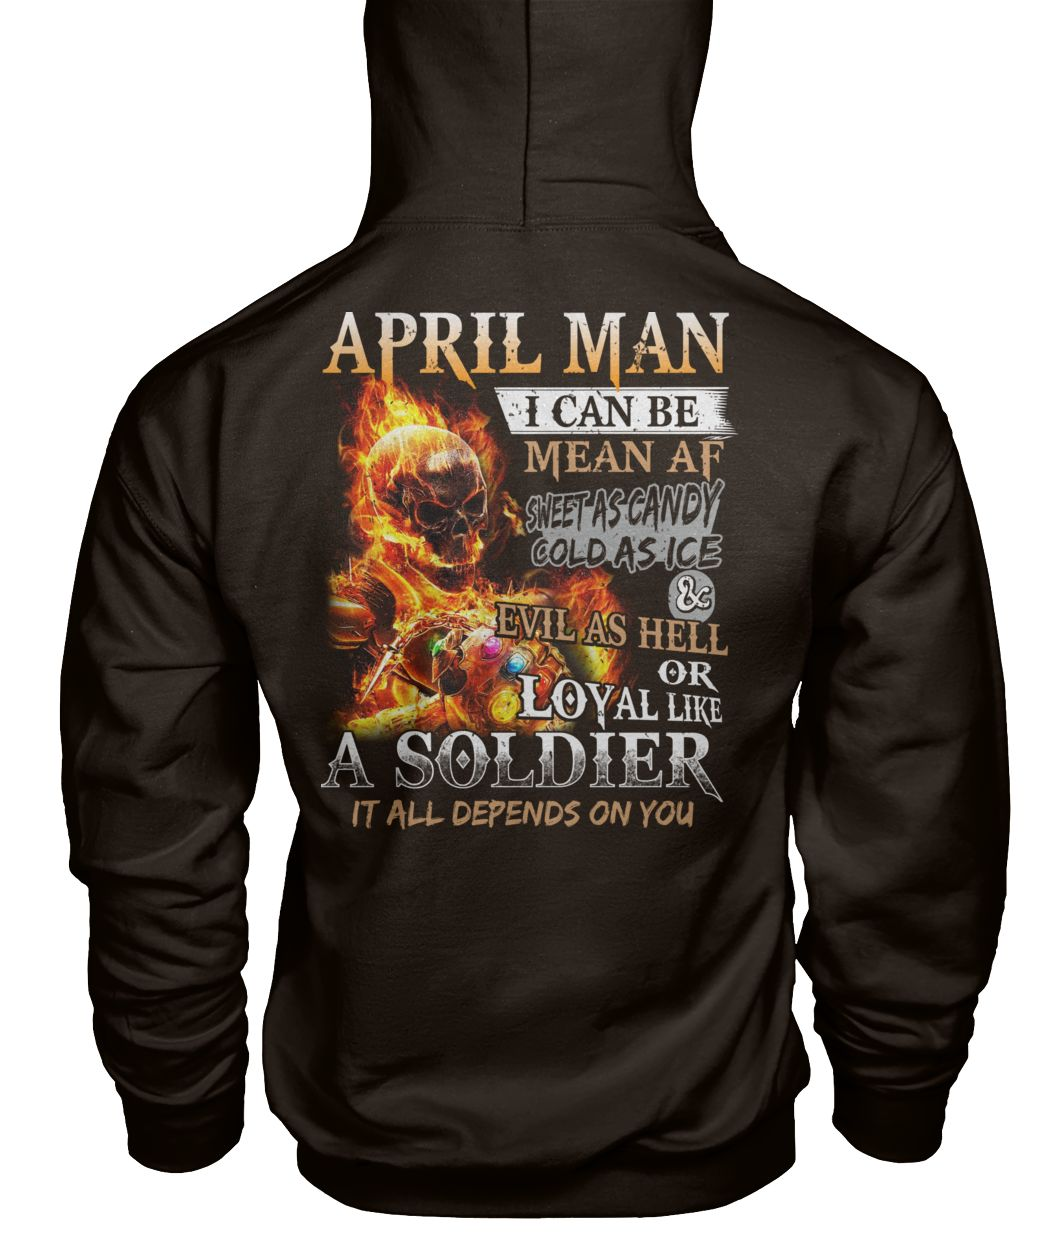 April man I can be mean af sweet as candy gold as ice and evil as hell gildan hoodie